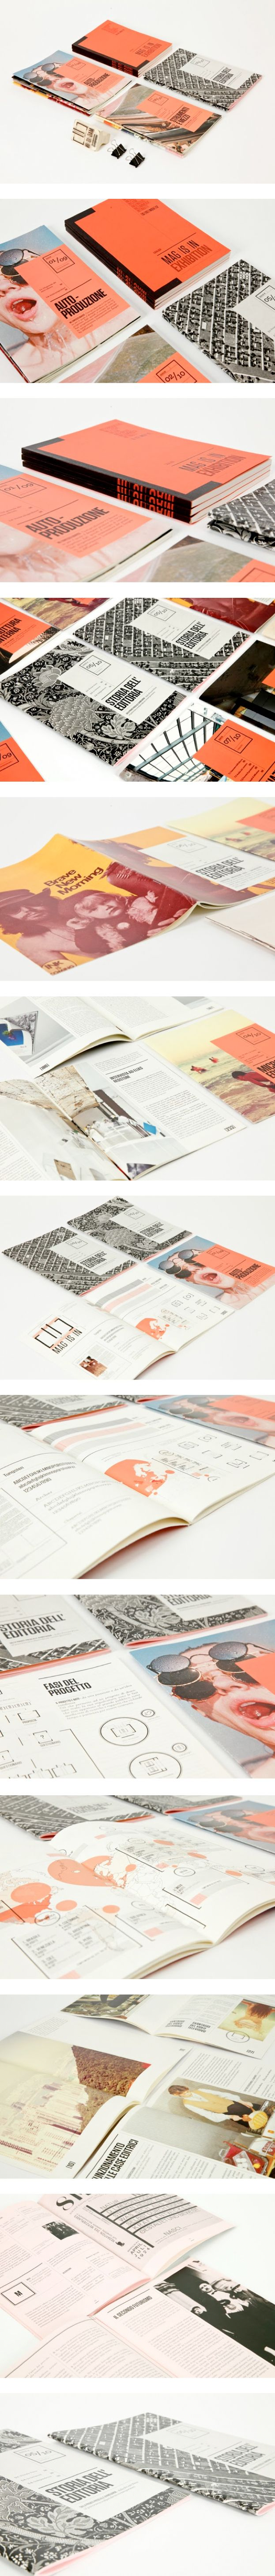 MAG IS IN, designed booklets about independent and self published magazines from all over the world.